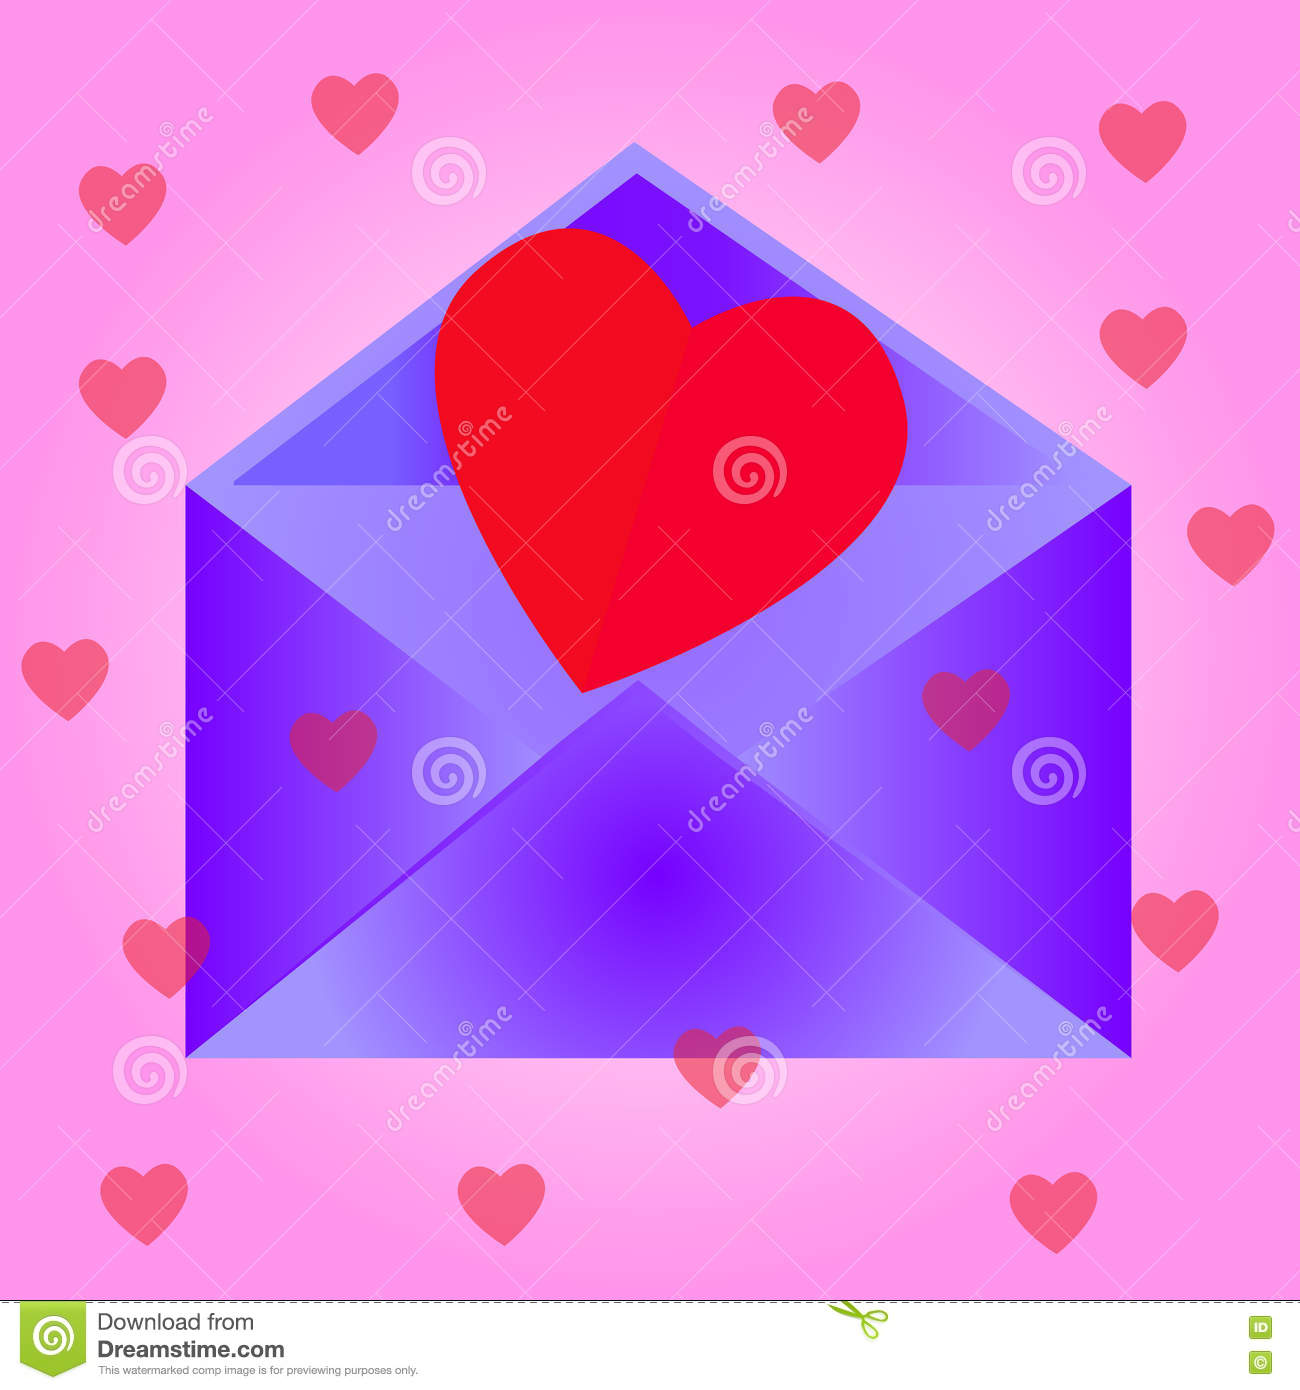 Envelope with heart, pink background.